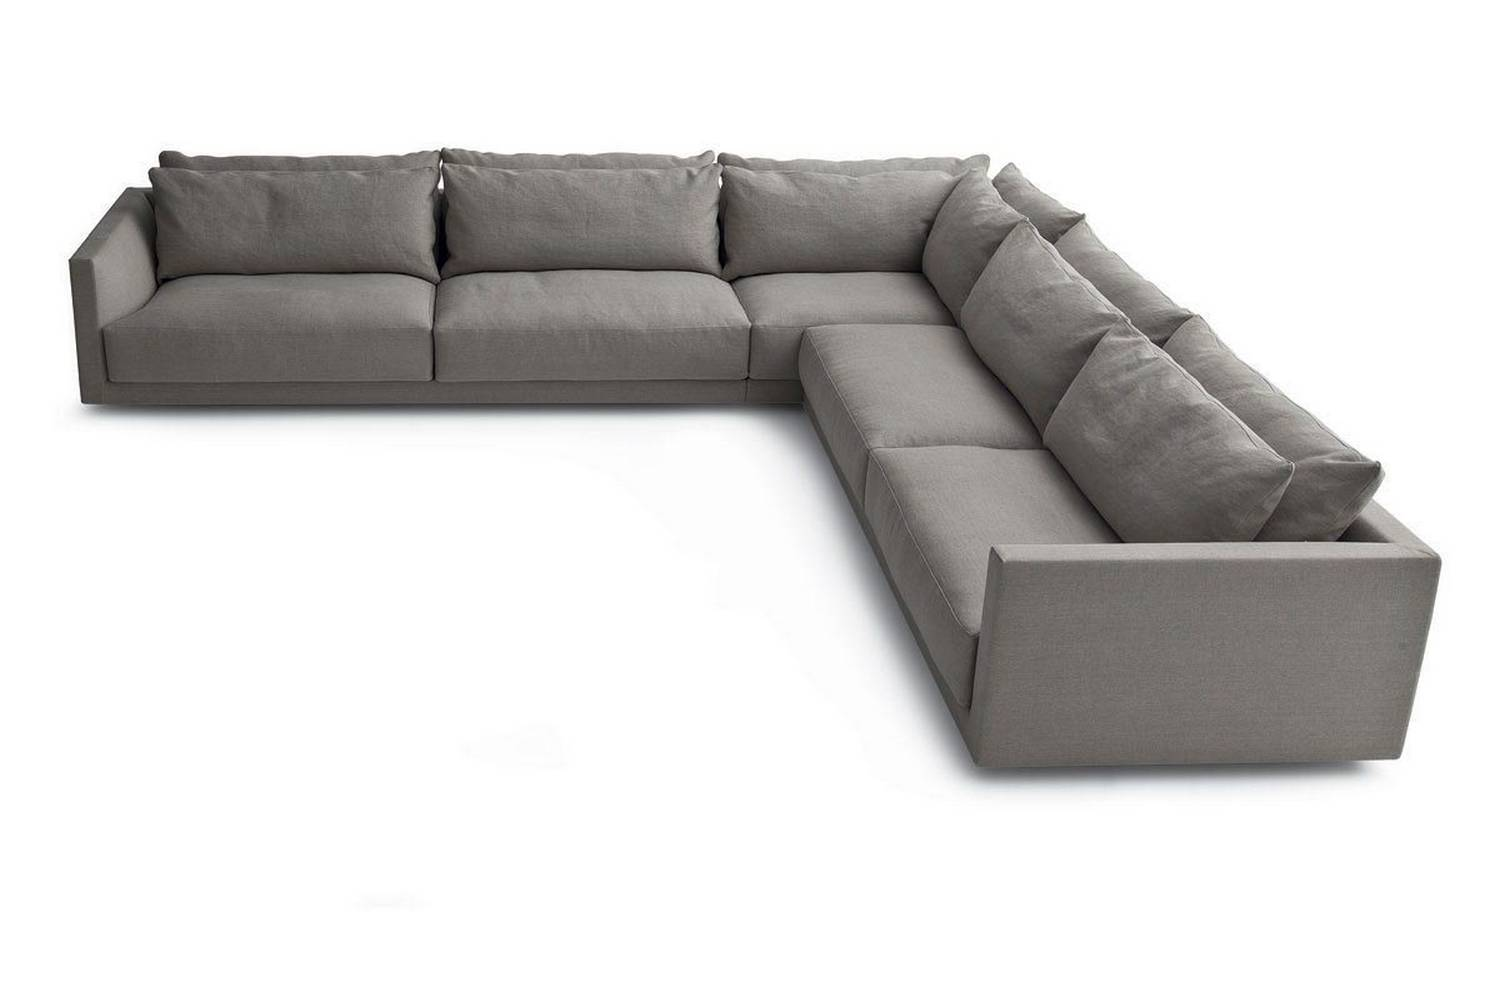 Best Sofas Australia Designer Sofas For Sale Poliform Australia